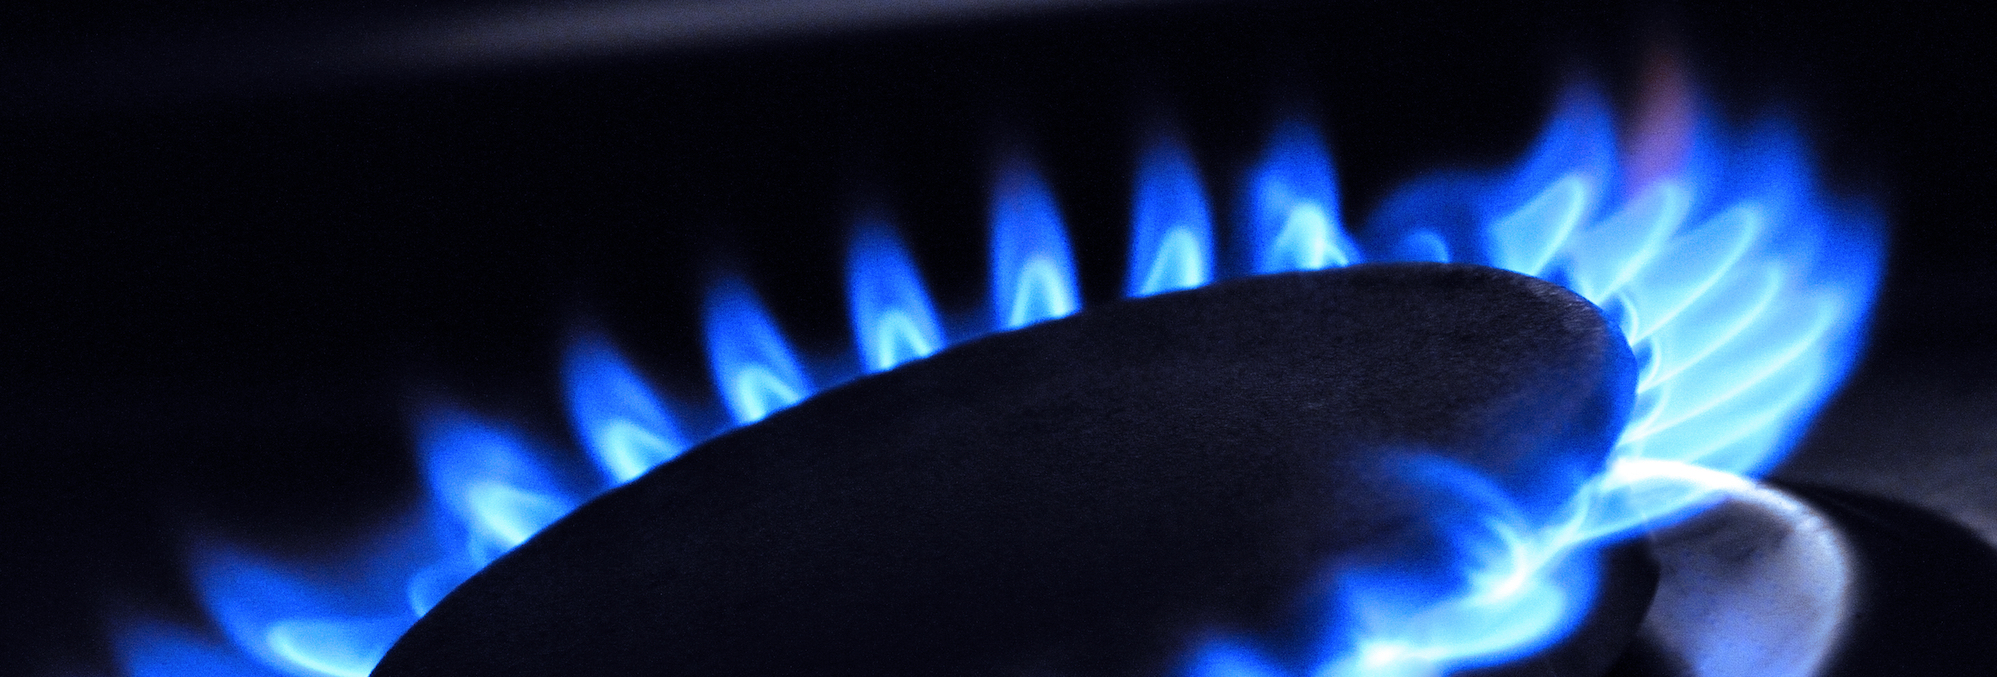 British Gas image